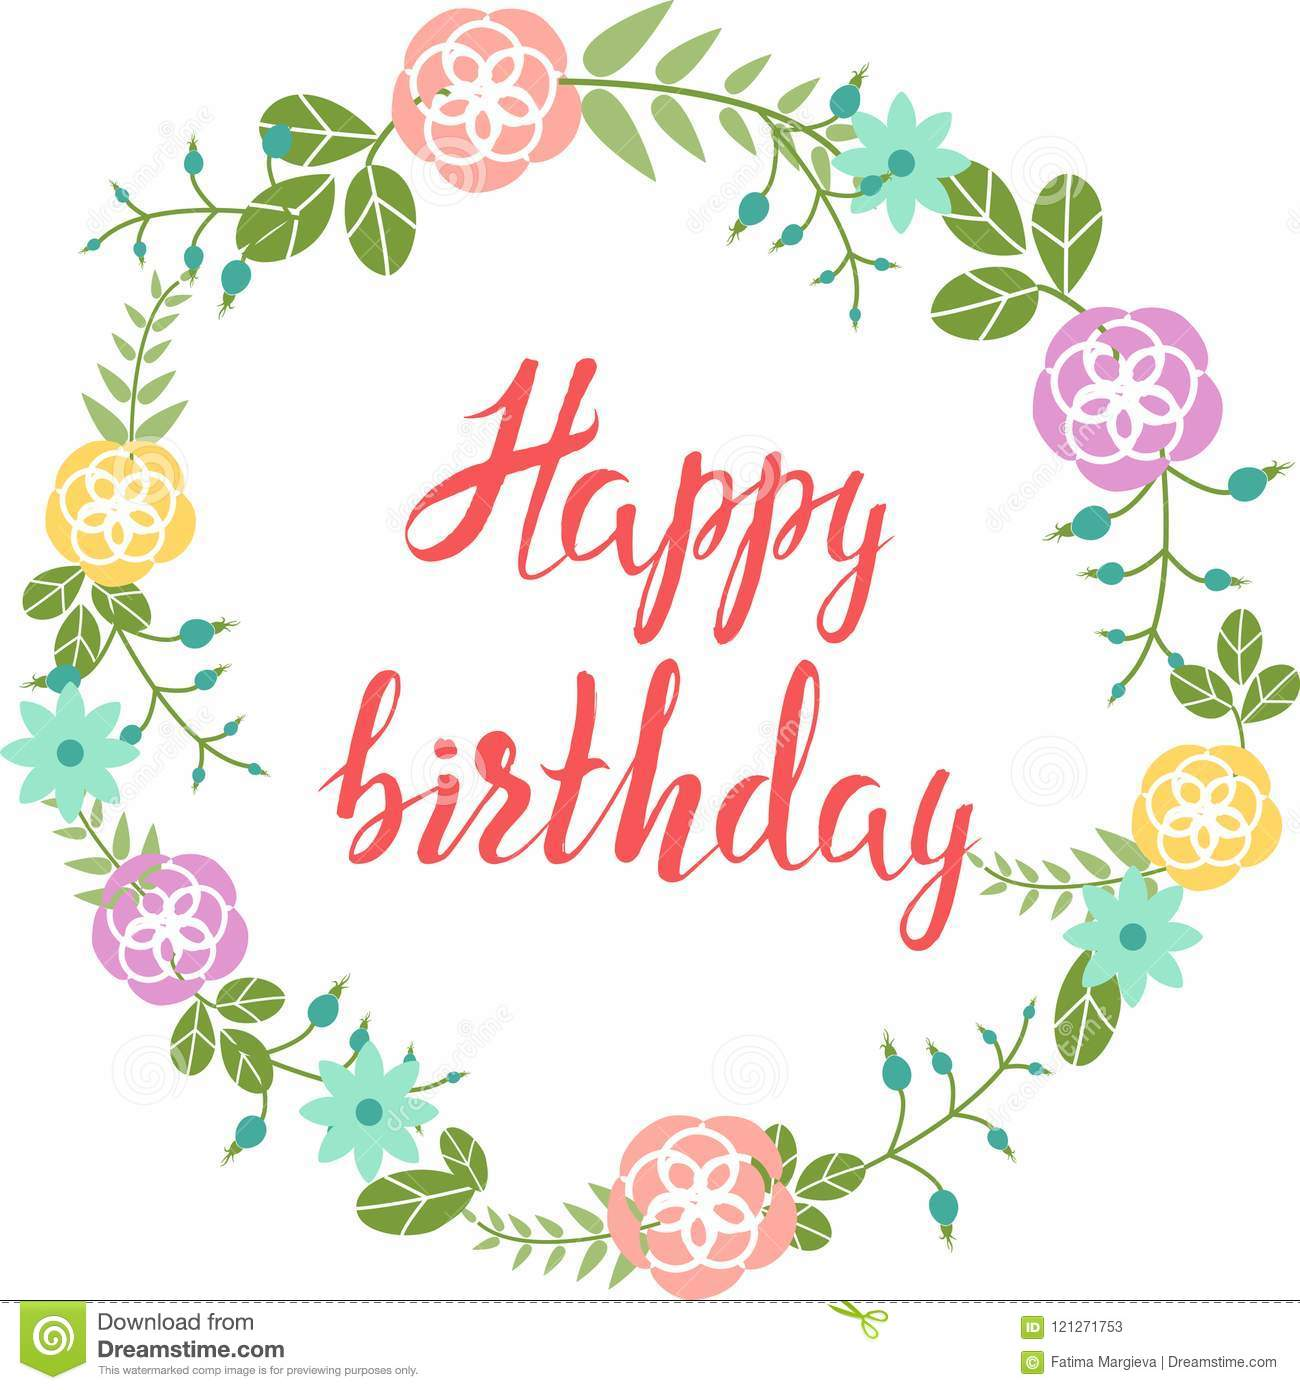 Hand Drawn Sketch Hand Drawn Lettering Happy Birthday Into Flower Frame Stock Vector Illustration Of Drawing Brush 121271753